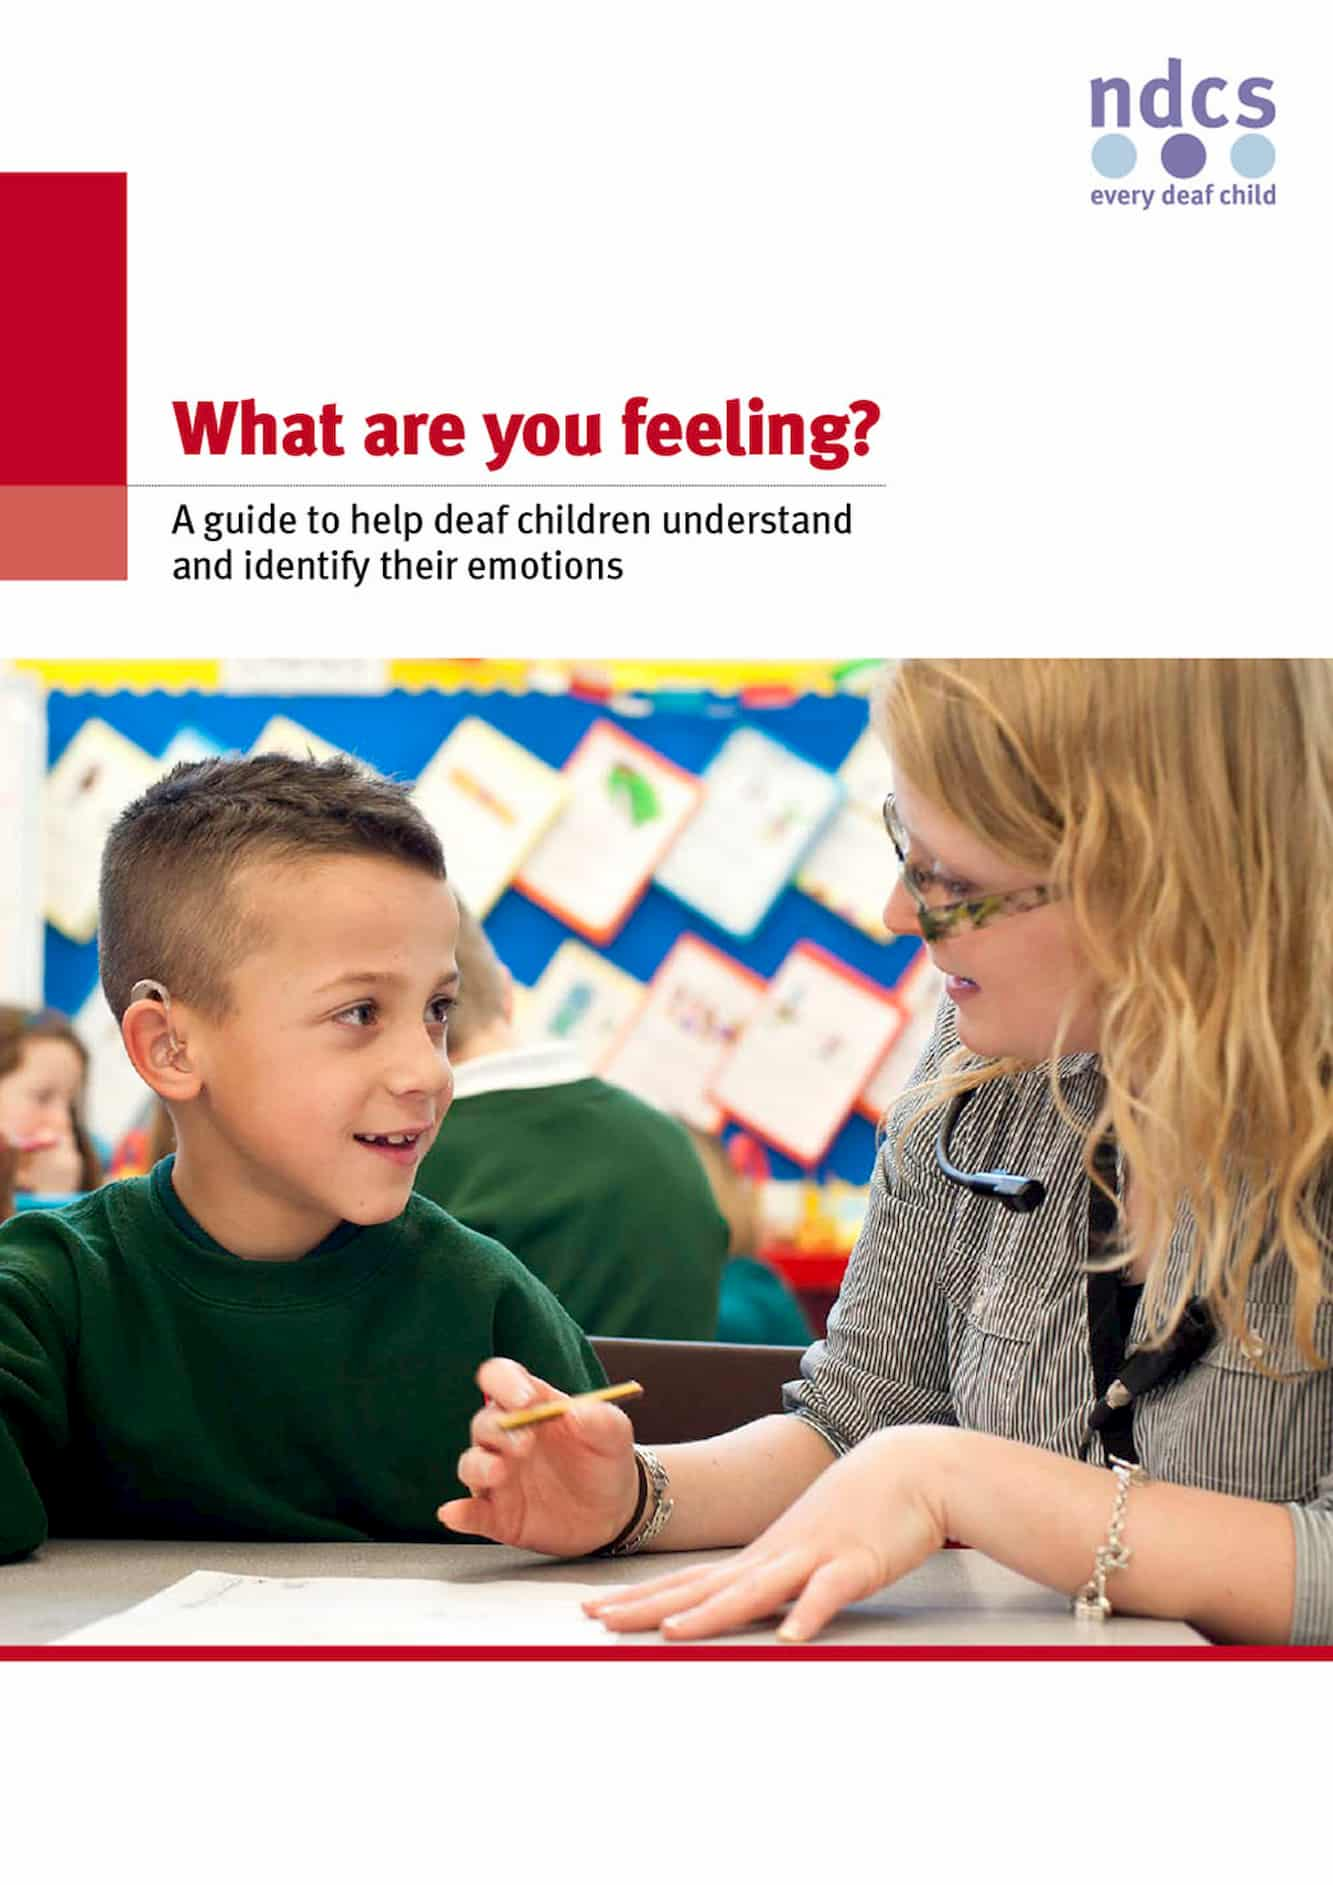 What are you feeling? A guide to help deaf children understand and identify their emotions